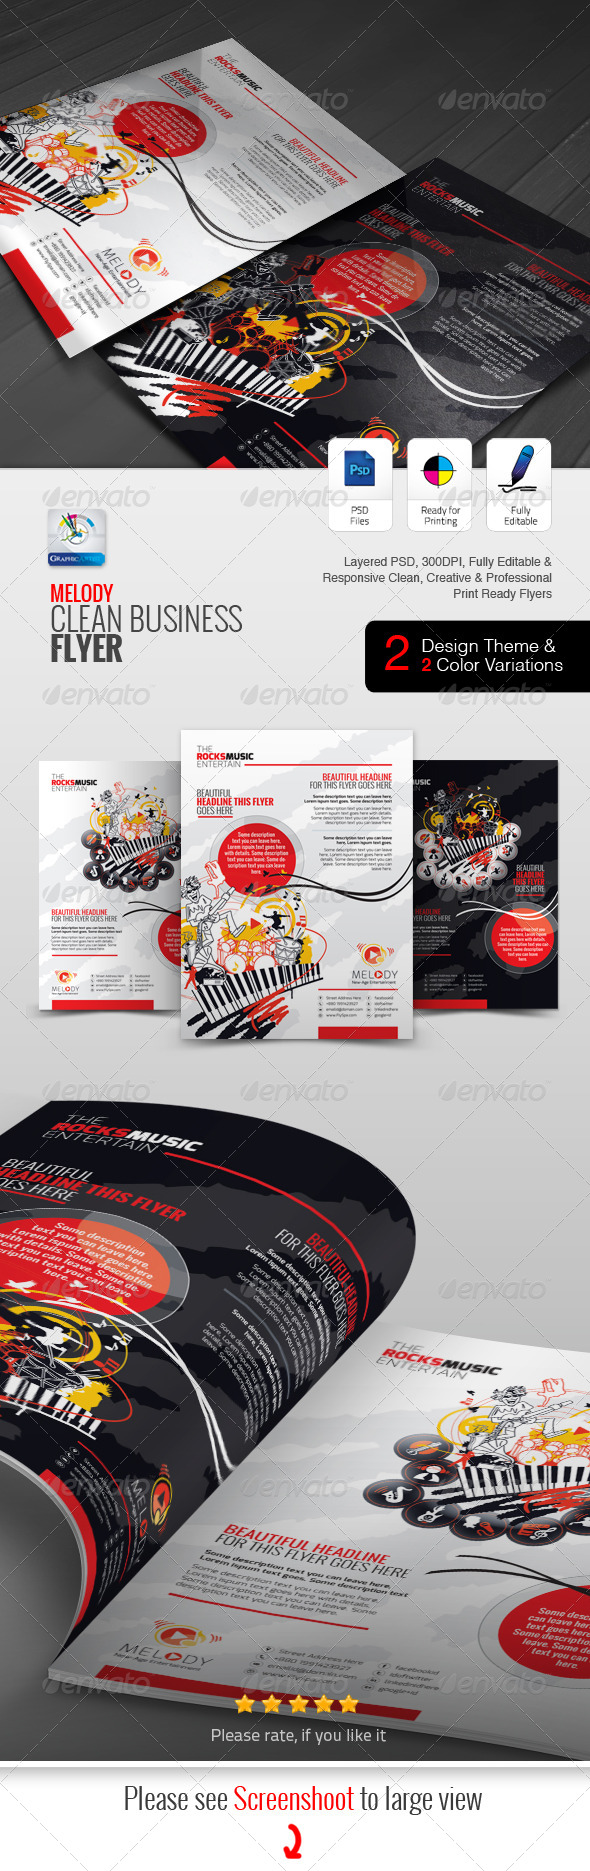 GraphicRiver Melody Business Flyer Ad 5820145